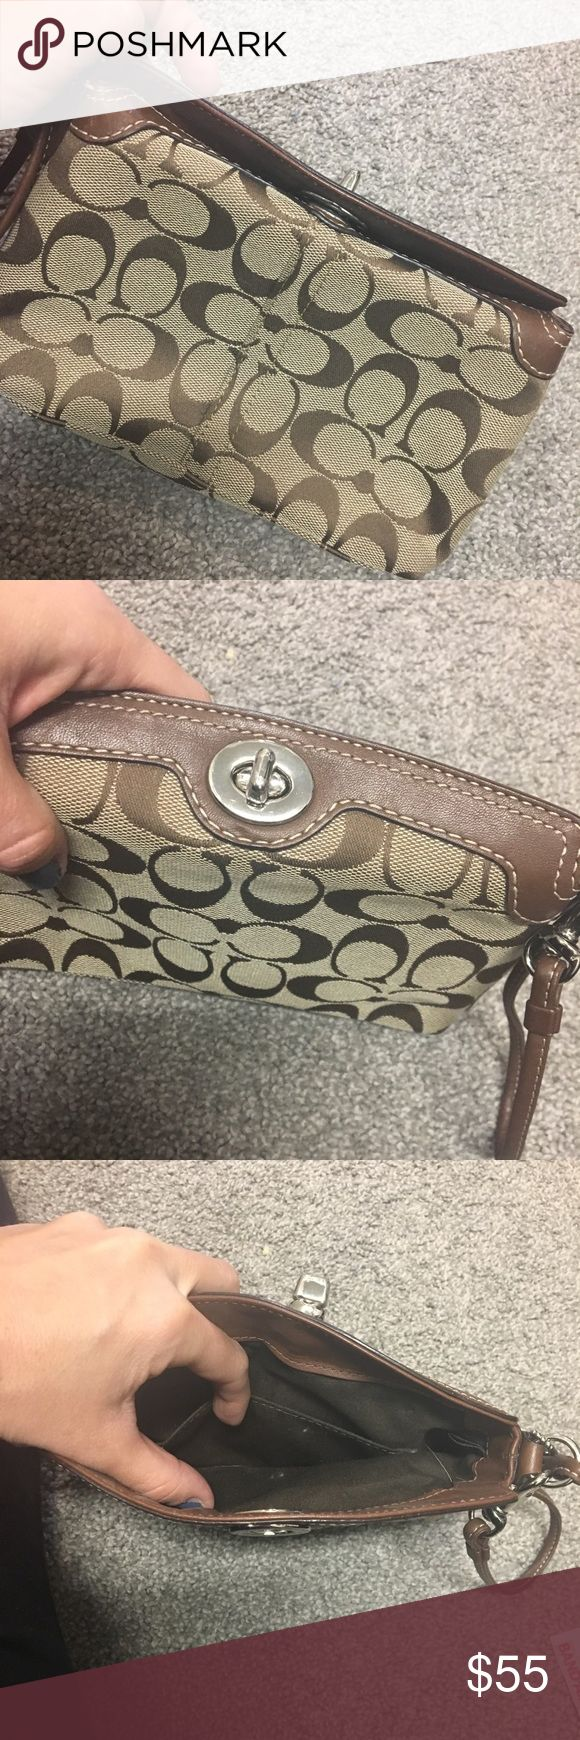 Coach Wristlet, great condition! Super cute and great everyday size Coach wristlet. Signature C in brown and tan. I think I maybe used this 5 times. Great deal! Coach Bags Clutches & Wristlets